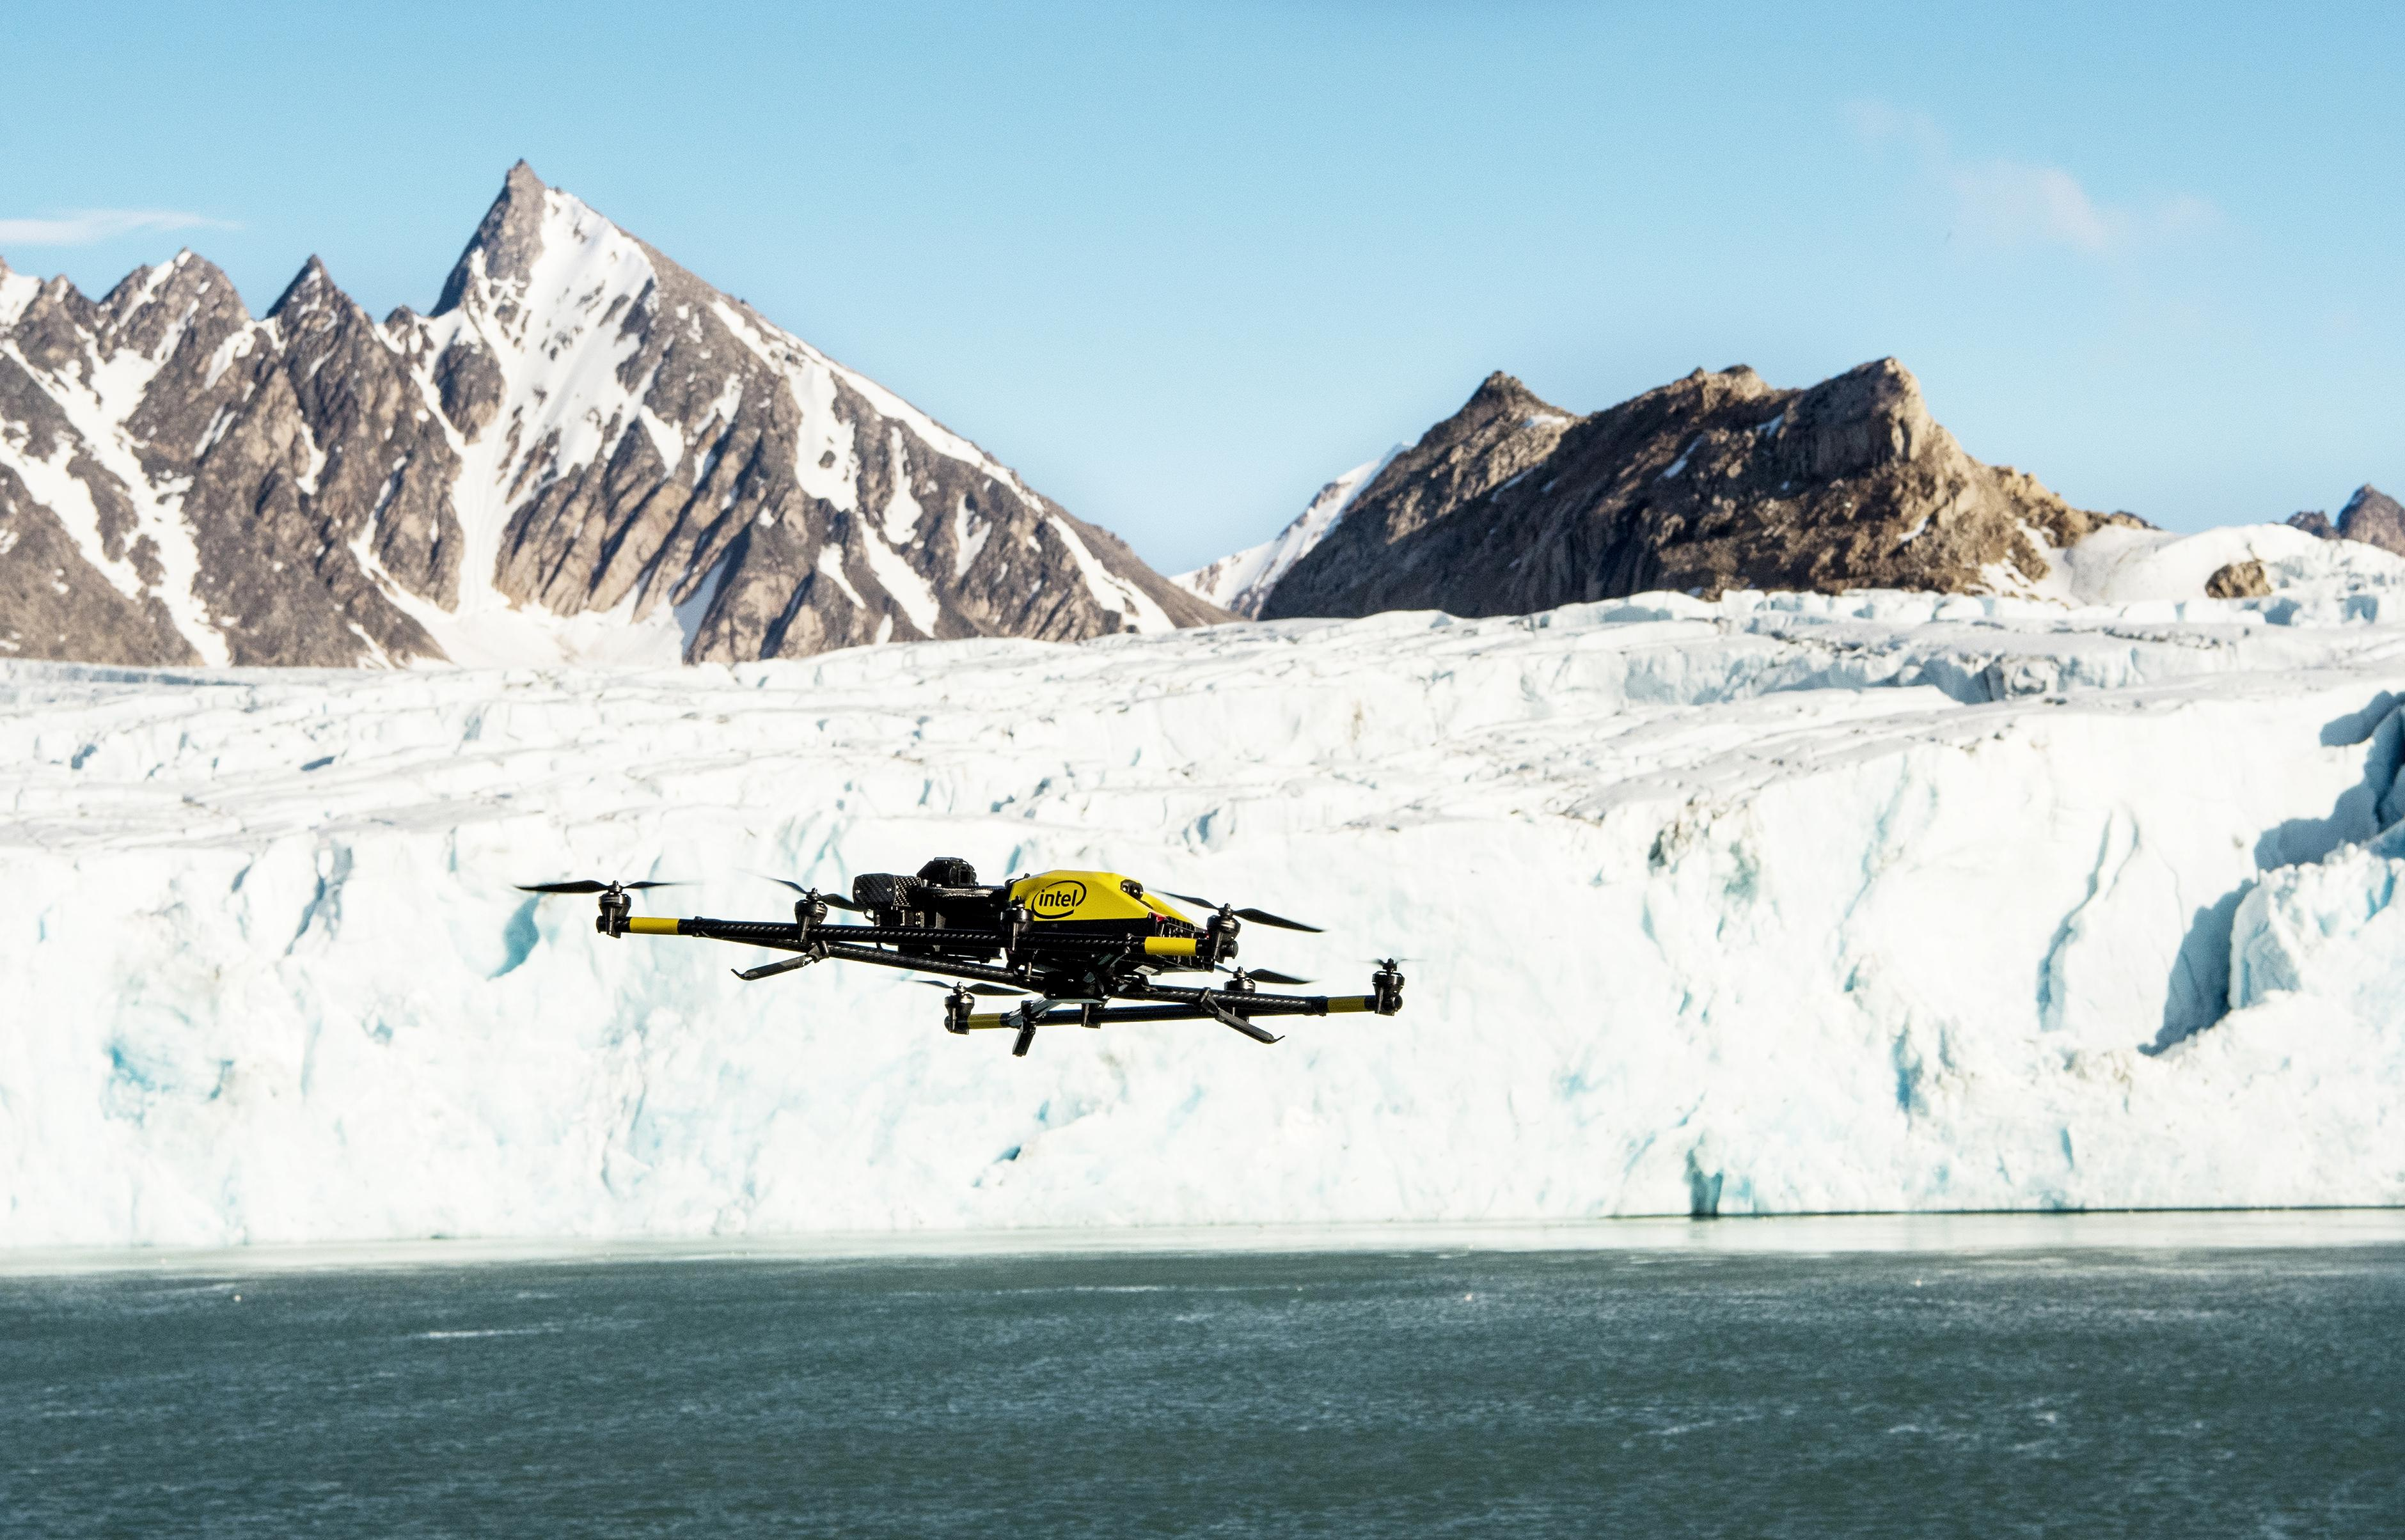 Intel's Falcon 8+ drones have been used for polar bear research in difficult environmental conditions.